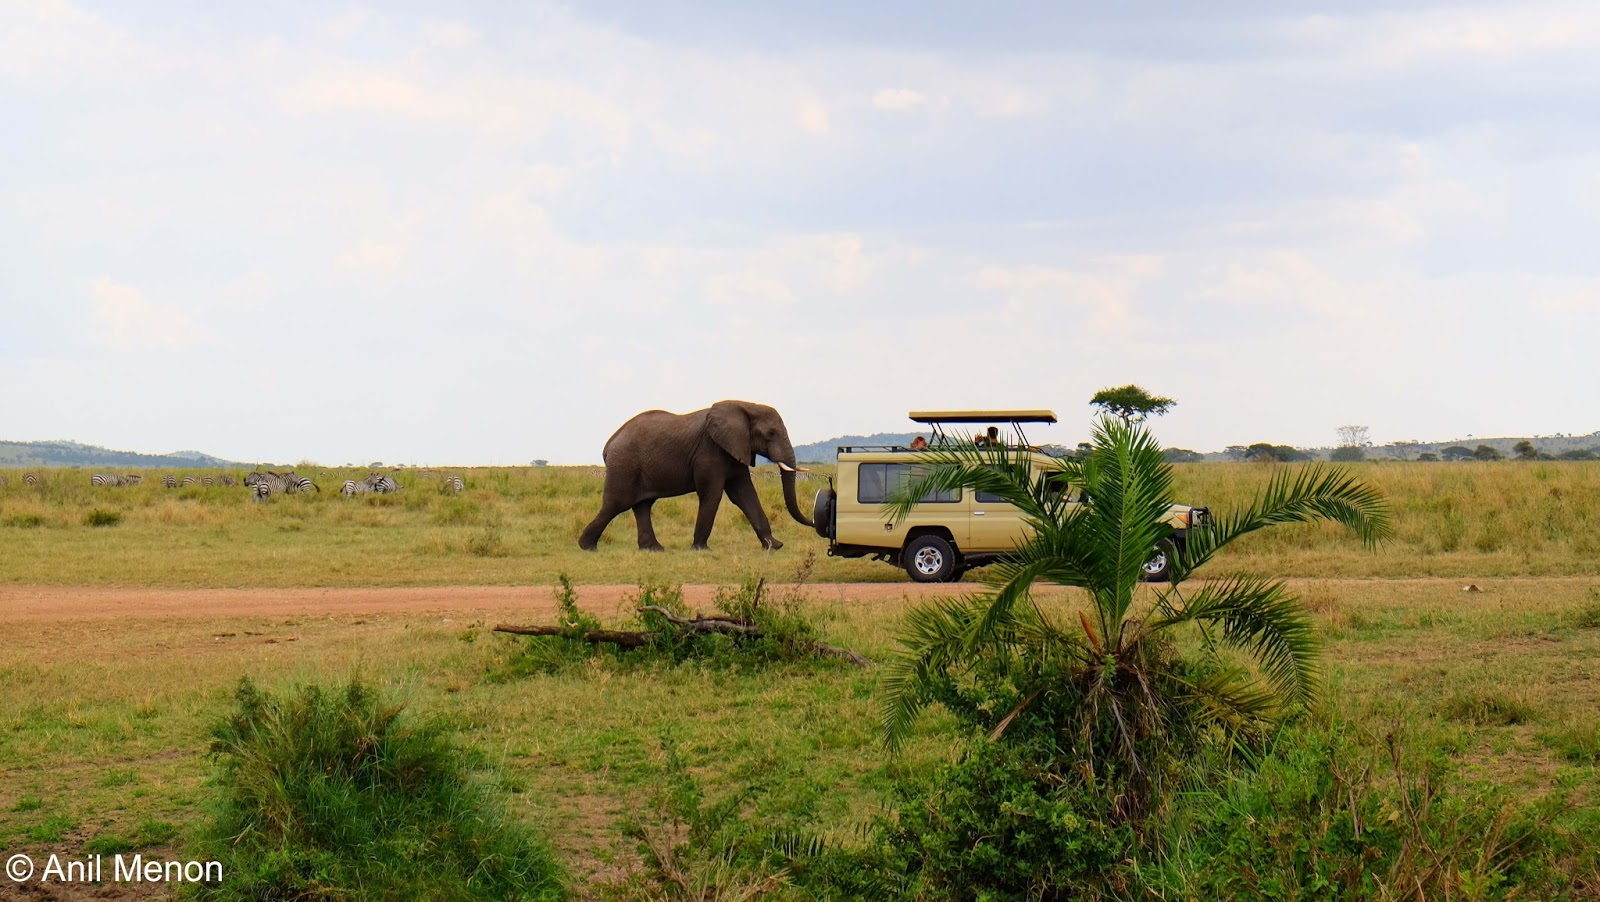 An elephant in a wildlife park in Tanzania right beside a safari vehicle